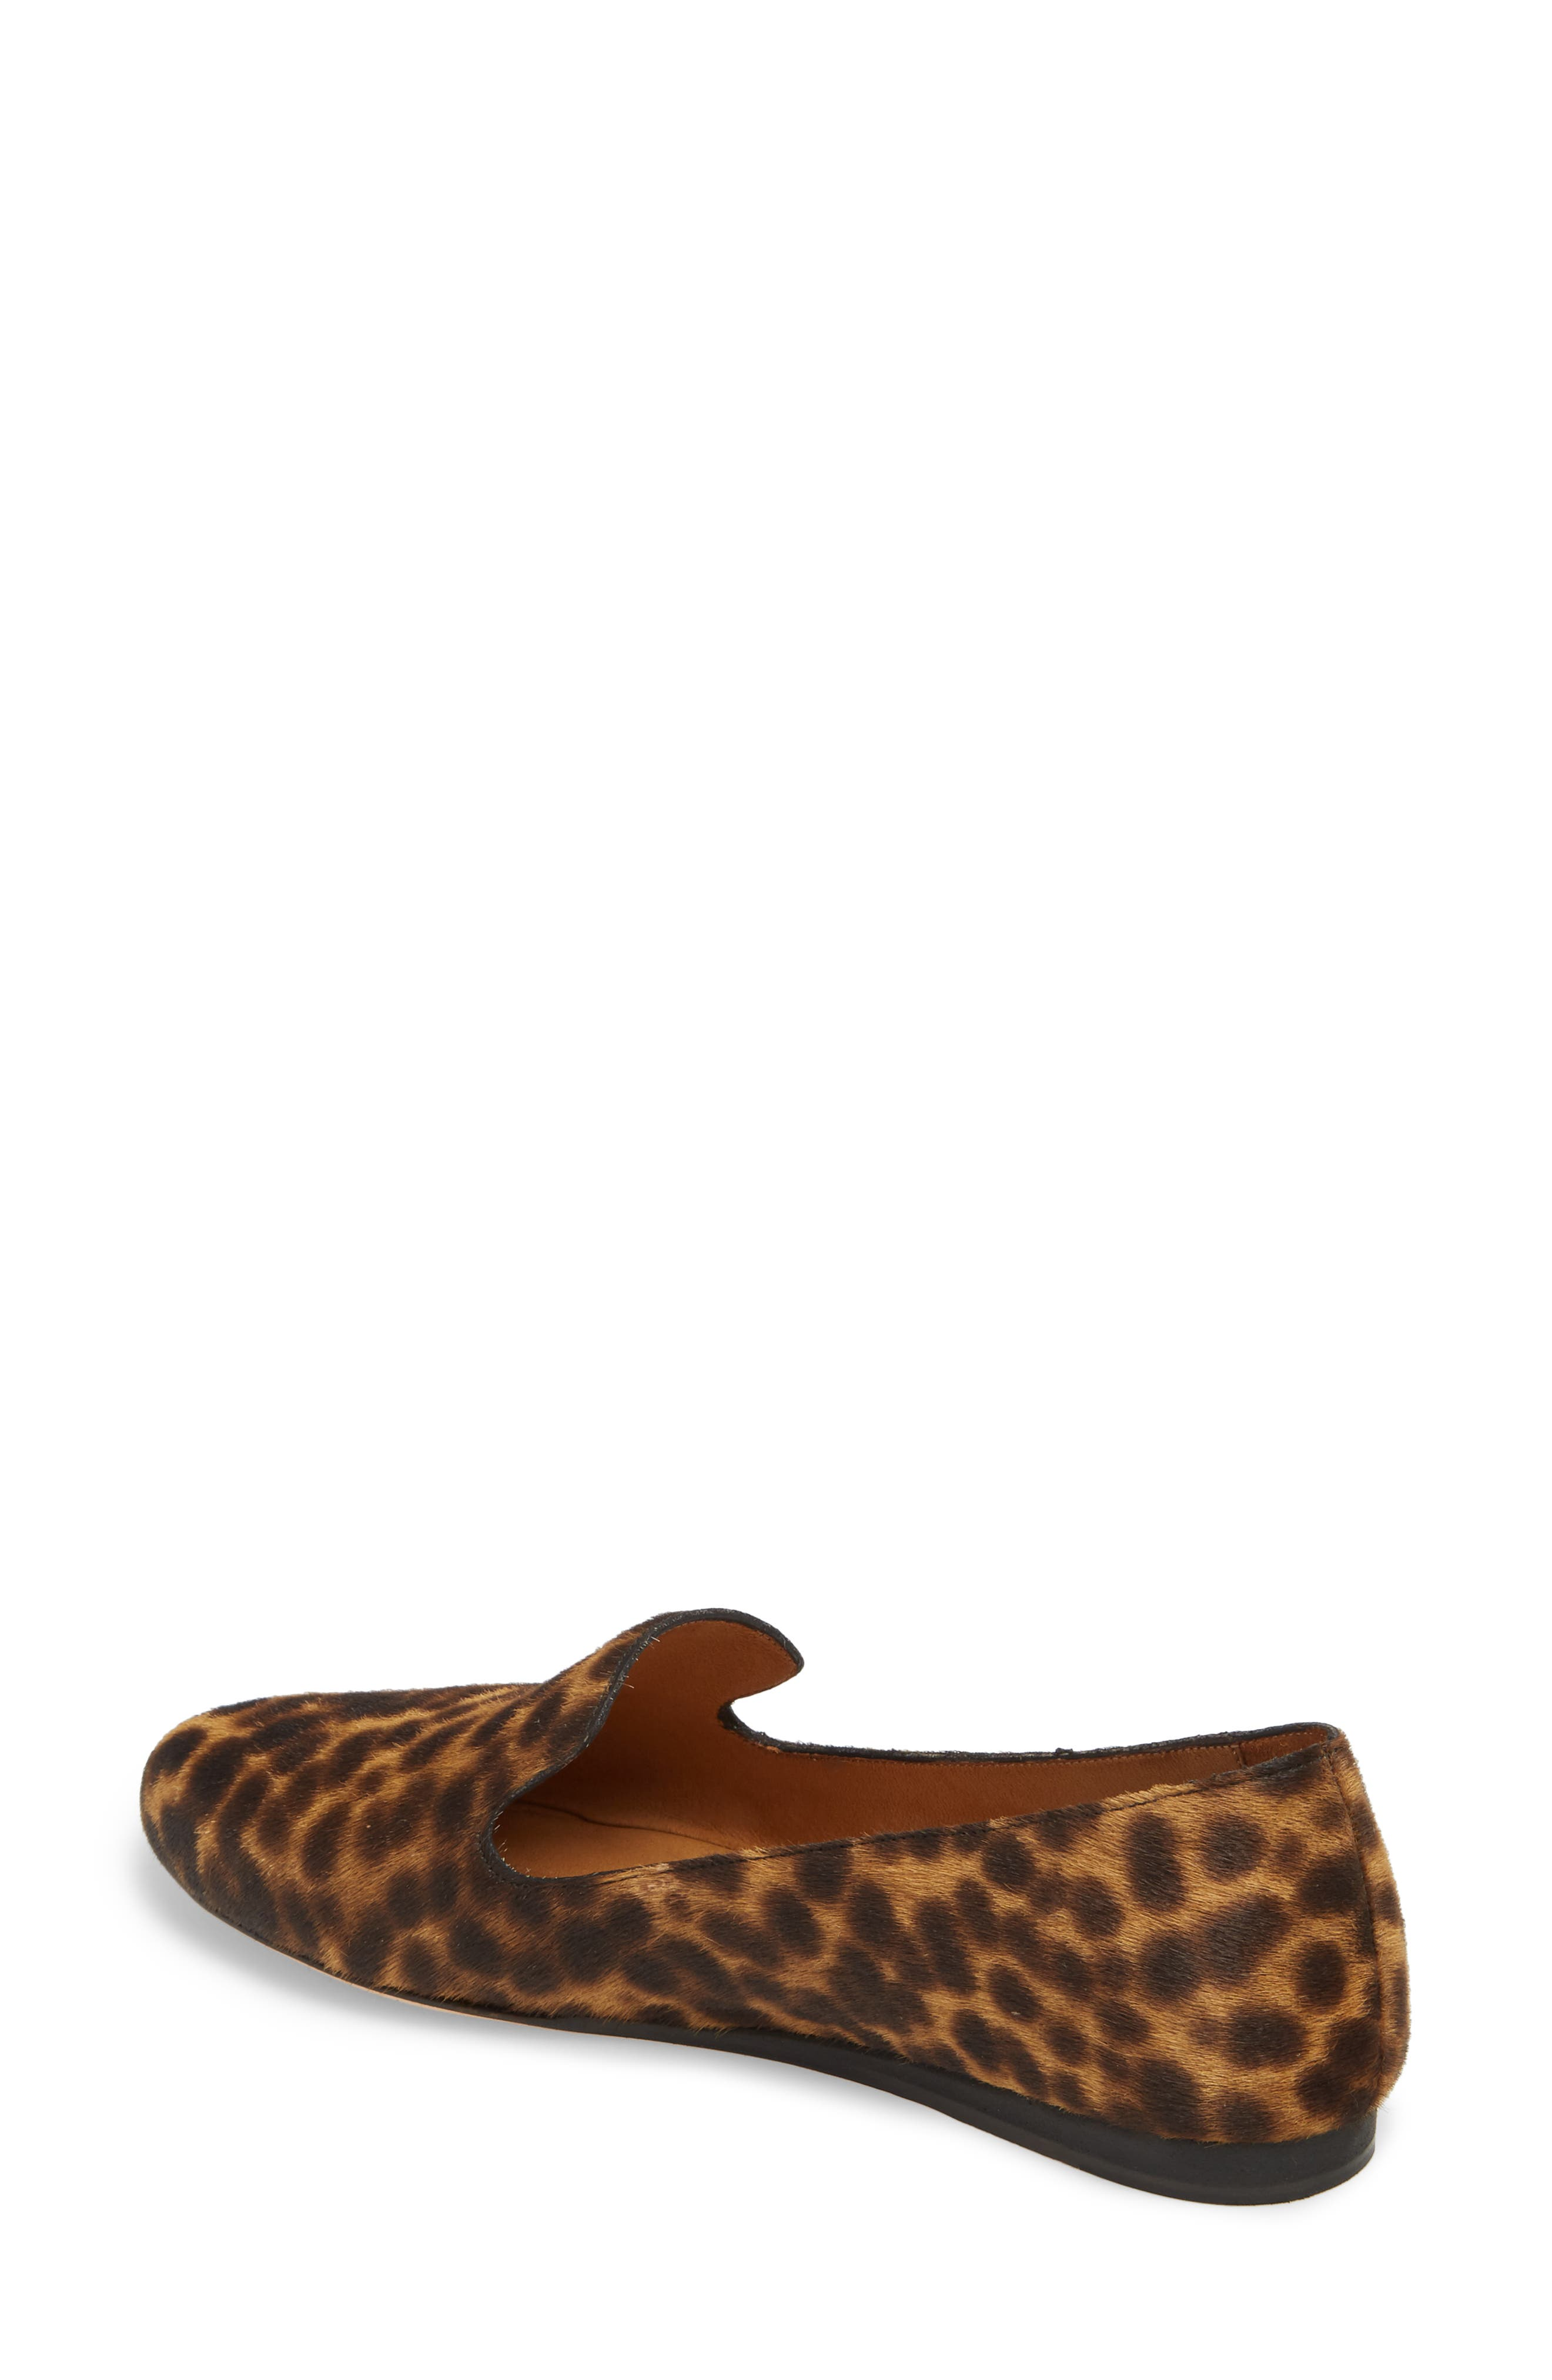 Griffin Genuine Calf Hair Loafer,                             Alternate thumbnail 2, color,                             LEOPARD